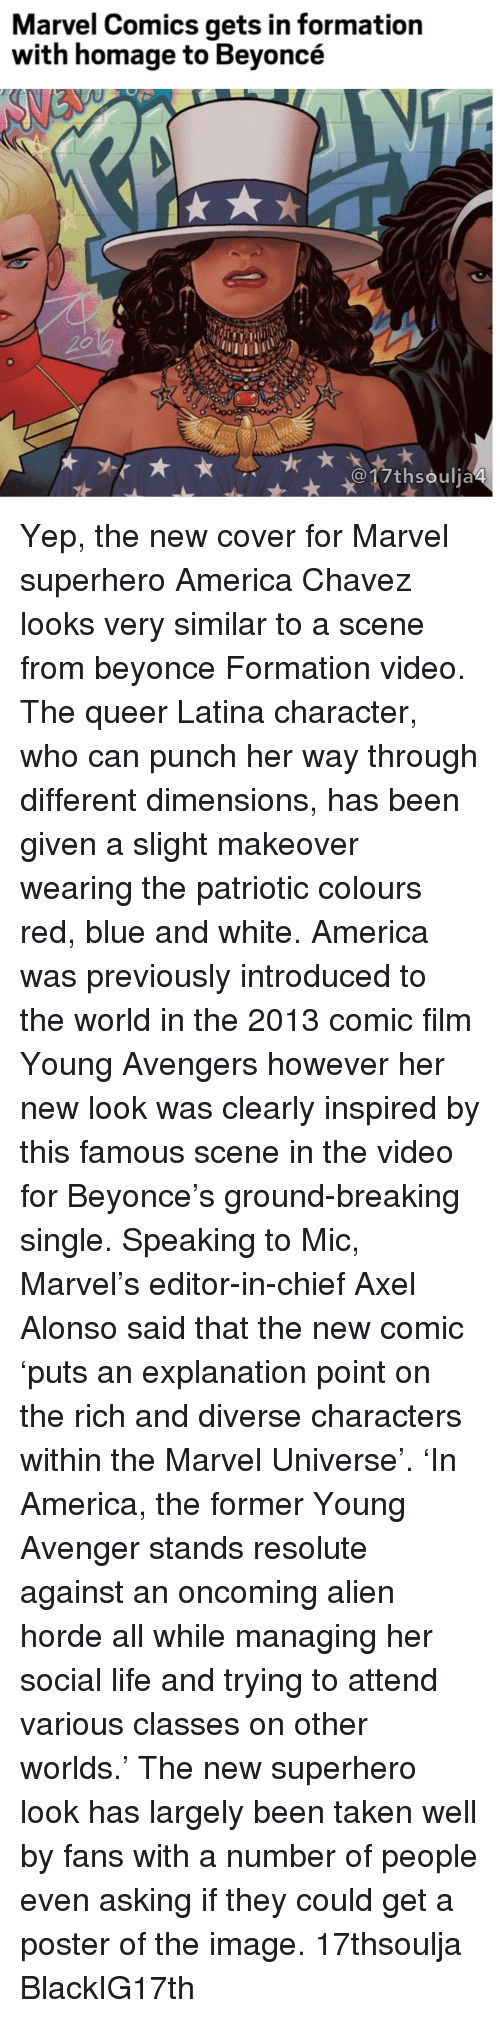 Marvel Comics, Memes, and Formation: Marvel Comics gets in formation  with homage to Beyoncé  017th soulja4 Yep, the new cover for Marvel superhero America Chavez looks very similar to a scene from beyonce Formation video. The queer Latina character, who can punch her way through different dimensions, has been given a slight makeover wearing the patriotic colours red, blue and white. America was previously introduced to the world in the 2013 comic film Young Avengers however her new look was clearly inspired by this famous scene in the video for Beyonce's ground-breaking single. Speaking to Mic, Marvel's editor-in-chief Axel Alonso said that the new comic 'puts an explanation point on the rich and diverse characters within the Marvel Universe'. 'In America, the former Young Avenger stands resolute against an oncoming alien horde all while managing her social life and trying to attend various classes on other worlds.' The new superhero look has largely been taken well by fans with a number of people even asking if they could get a poster of the image. 17thsoulja BlackIG17th